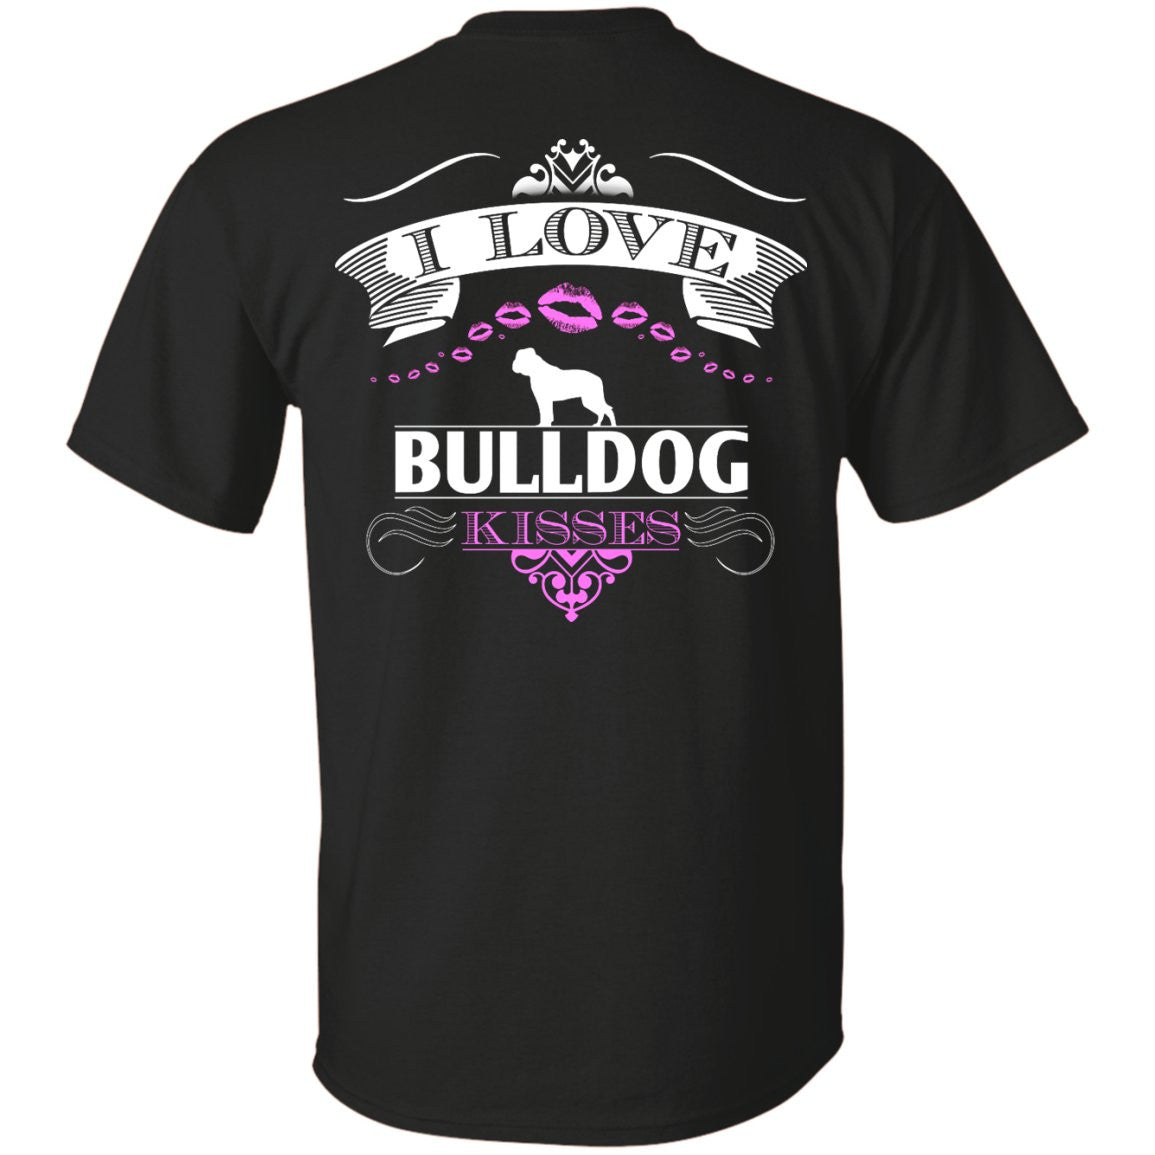 I LOVE BULLDOG KISSES - BACK DESIGN - Custom Ultra Cotton T-Shirt